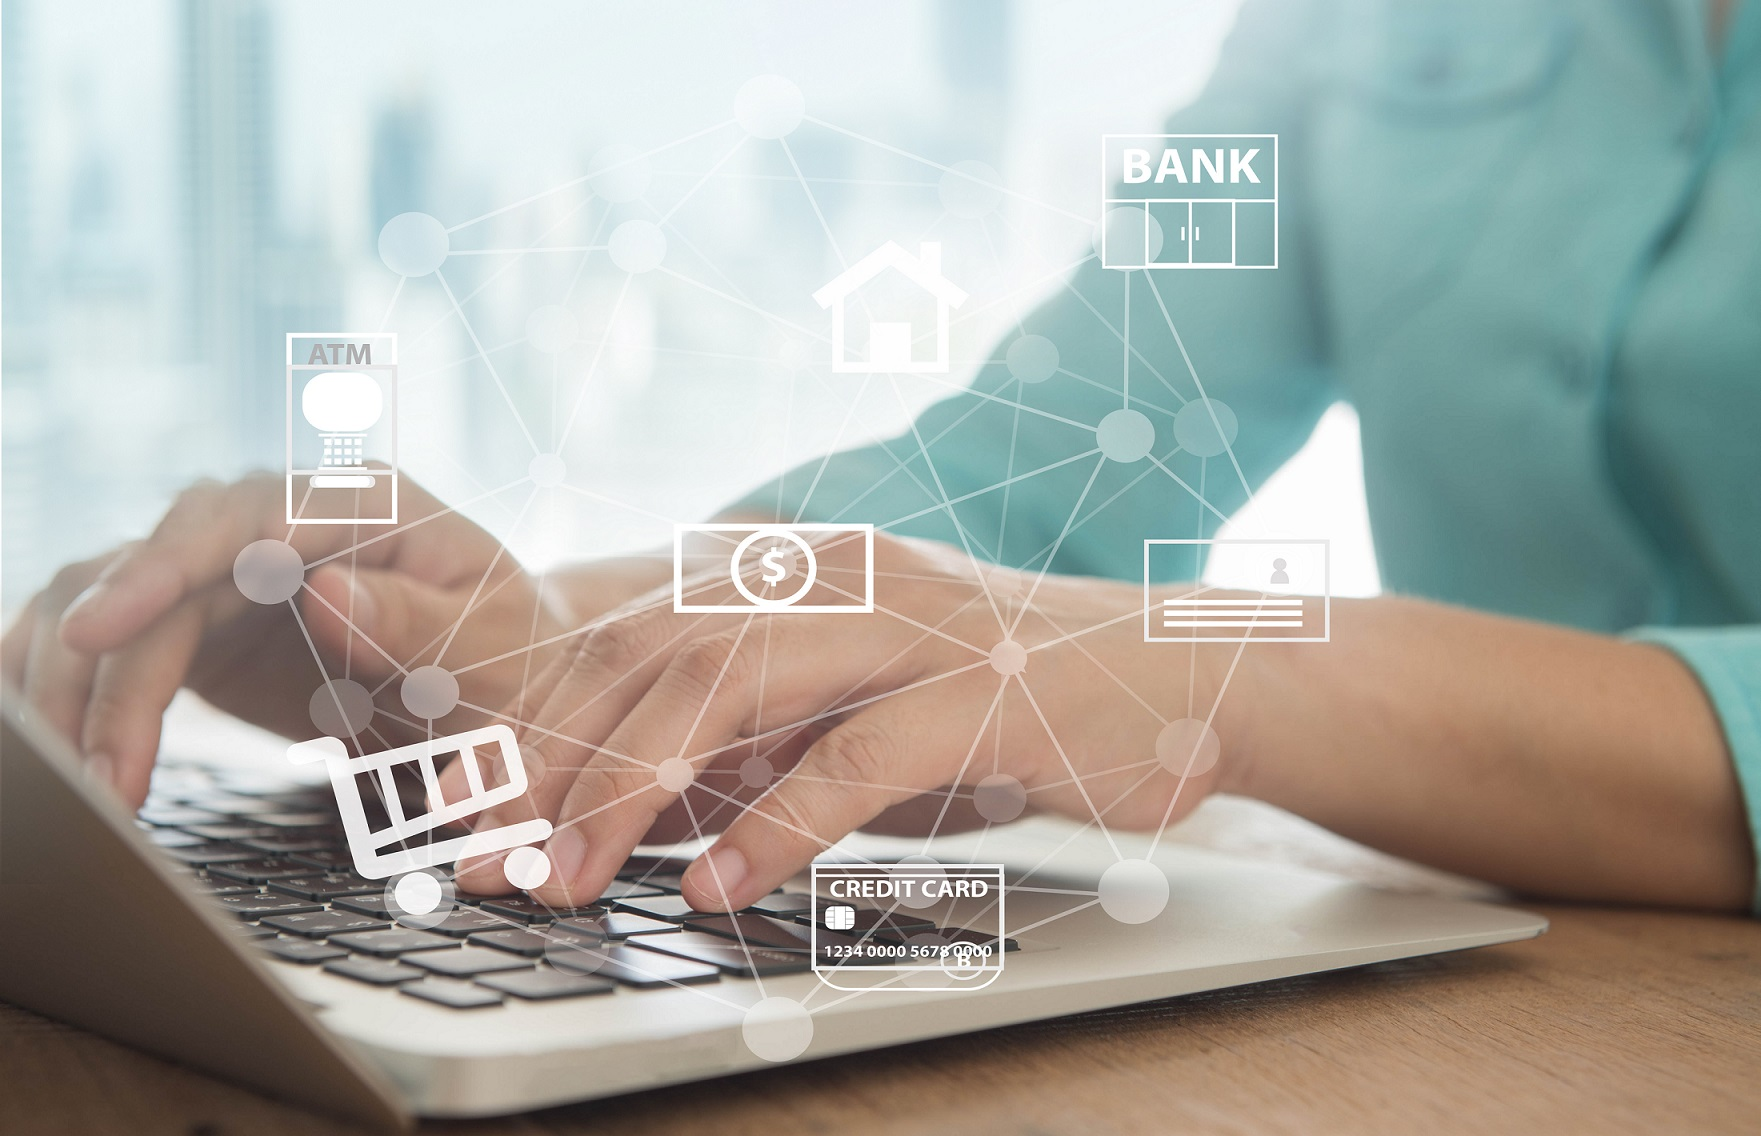 data protection in online banking Thank you for using standard chartered online banking protect your banking important security advice to help keep your online banking experience secure, fast and convenient.